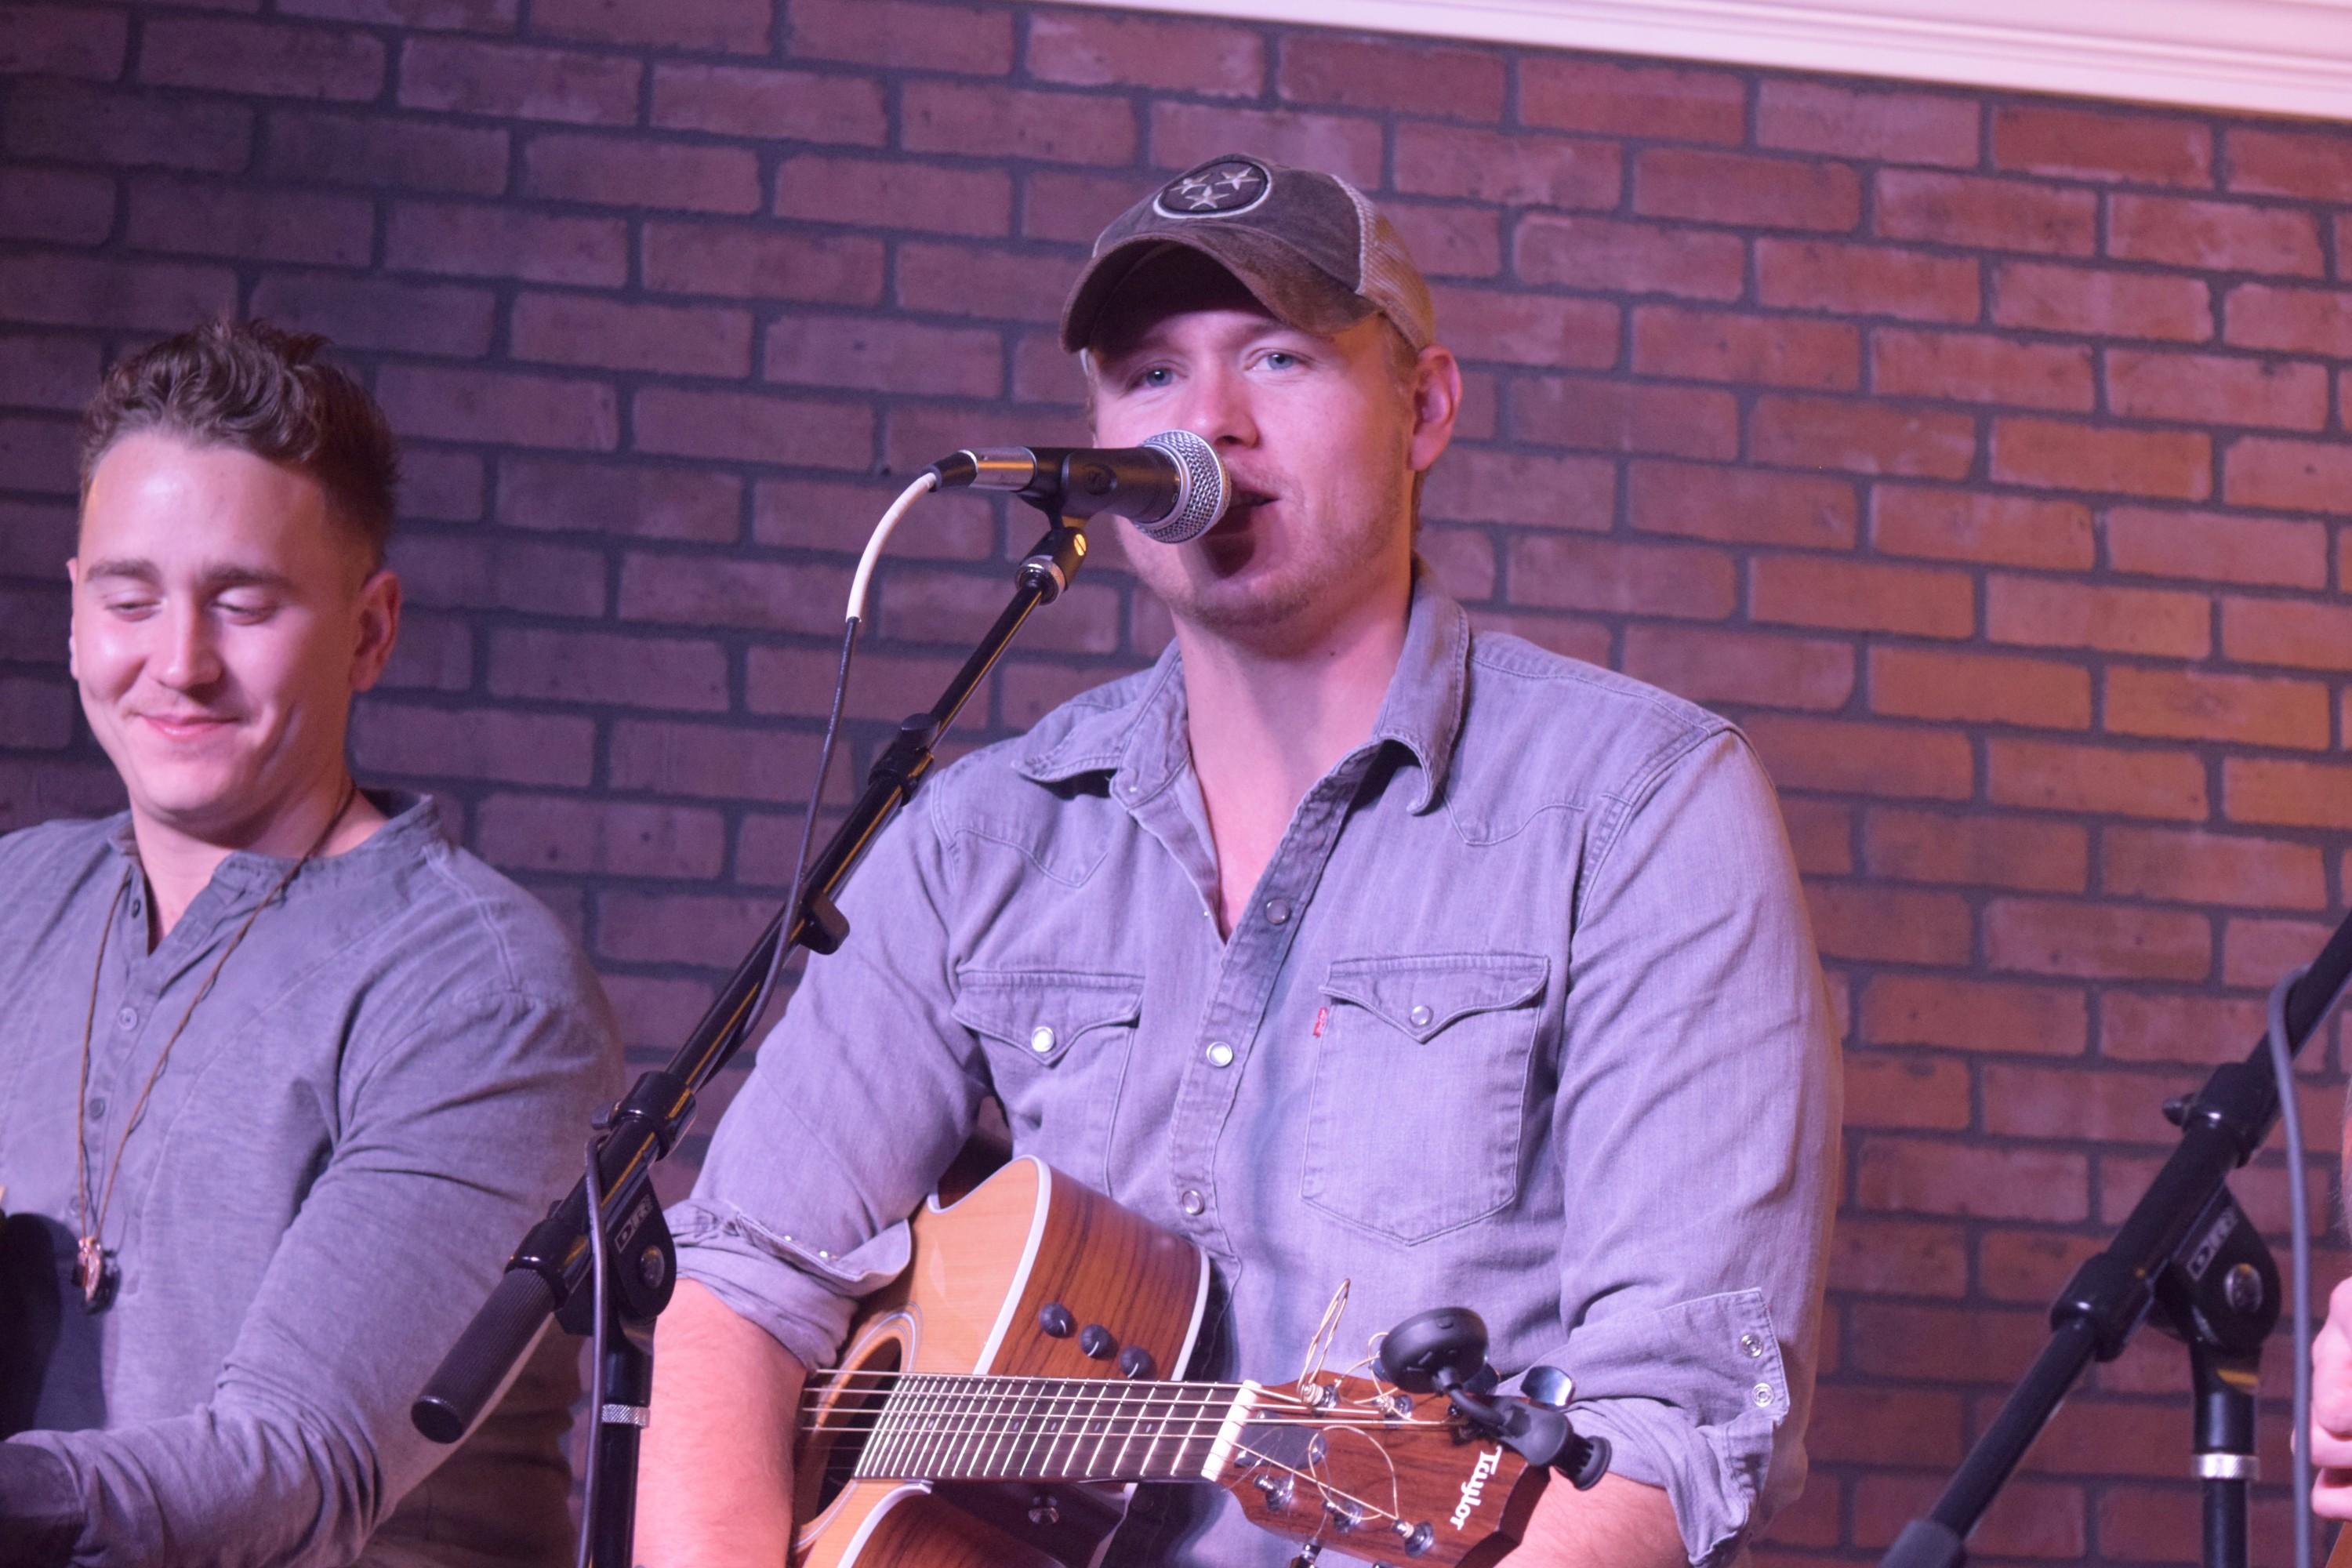 James Barker Band in the Music City Performance Studio